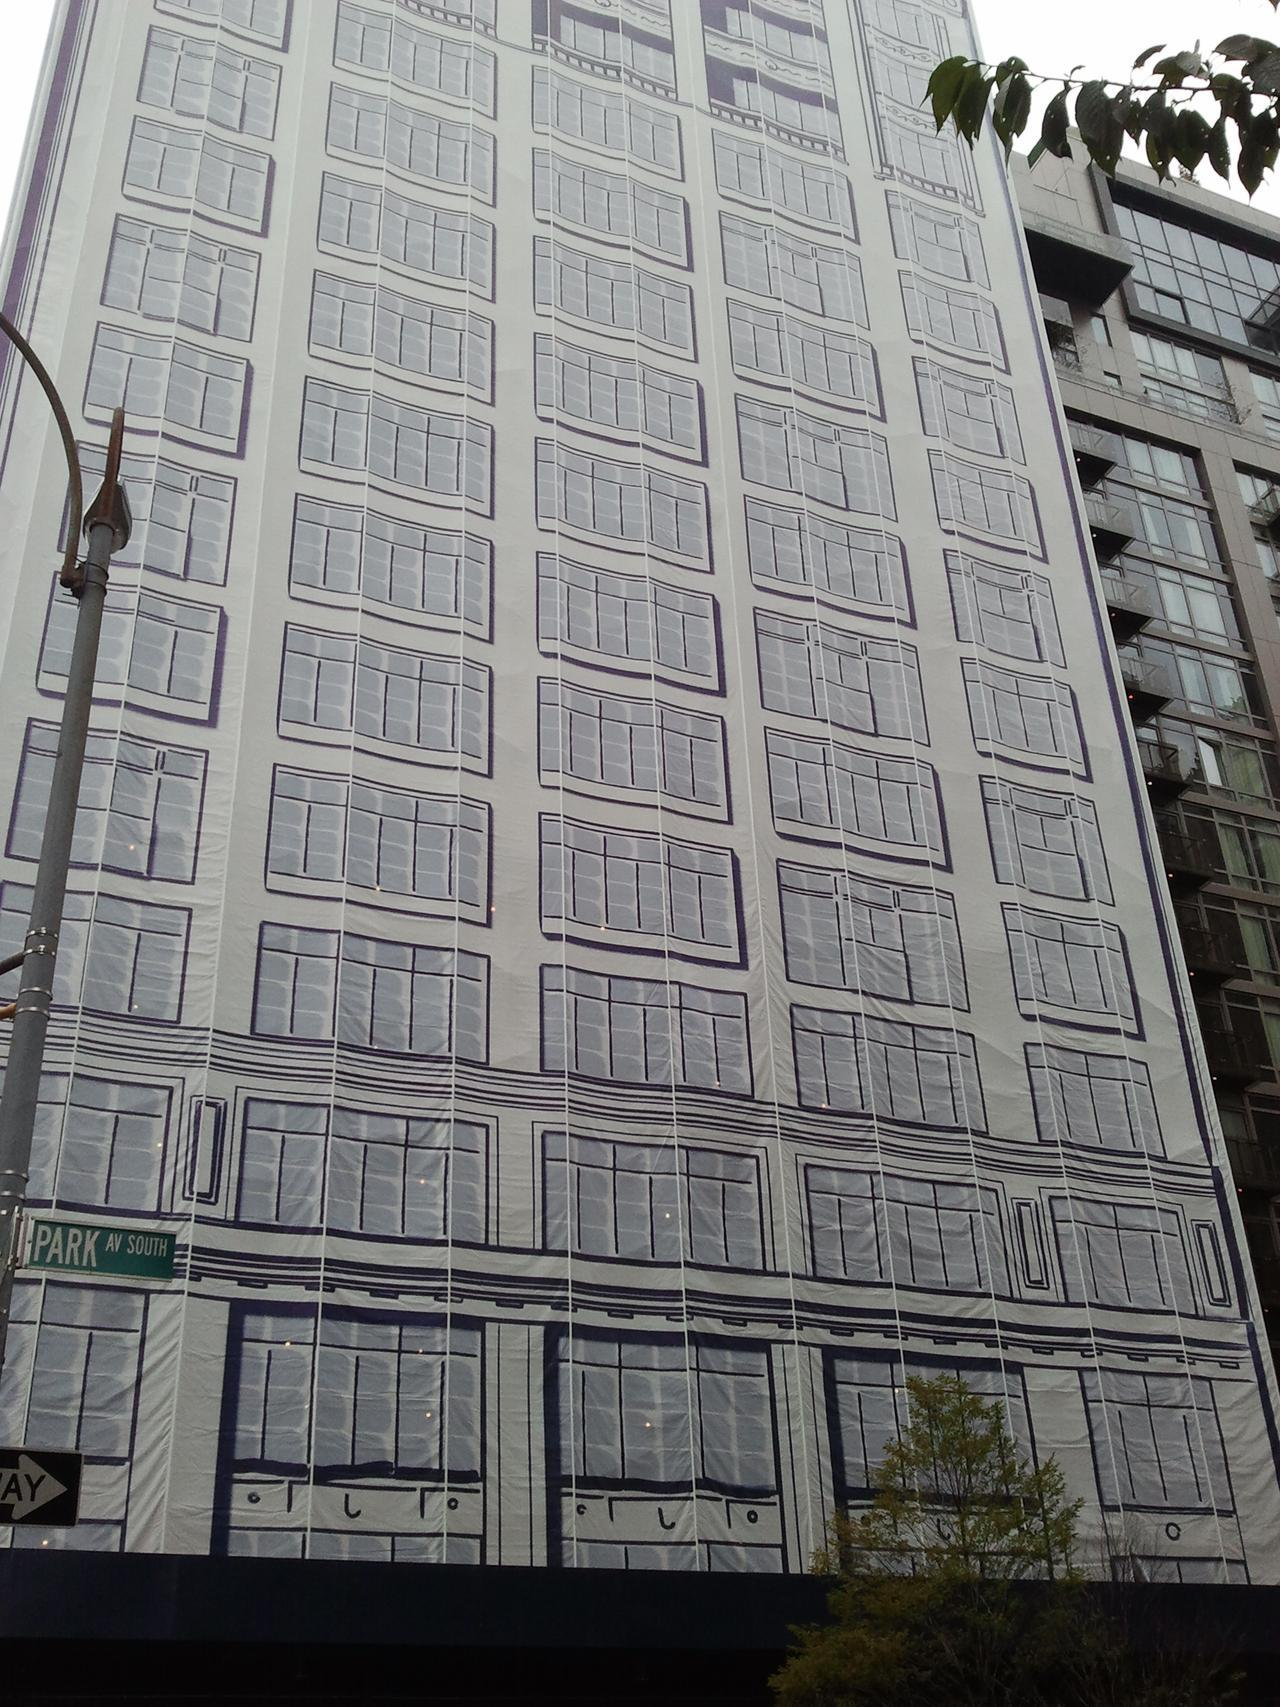 By: Meredith Cohen A Park Avenue building around the corner from our office is under renovation but at first glance you wouldn't know it. The building's façade – from street level to roof – is draped in fabric, printed with a window pattern. The detailing and shadow on the printed fabric tricks the eye into thinking you're looking at a real building. This is a great method to conceal undesirable construction, while using printed materials to liven up an otherwise boring city block.